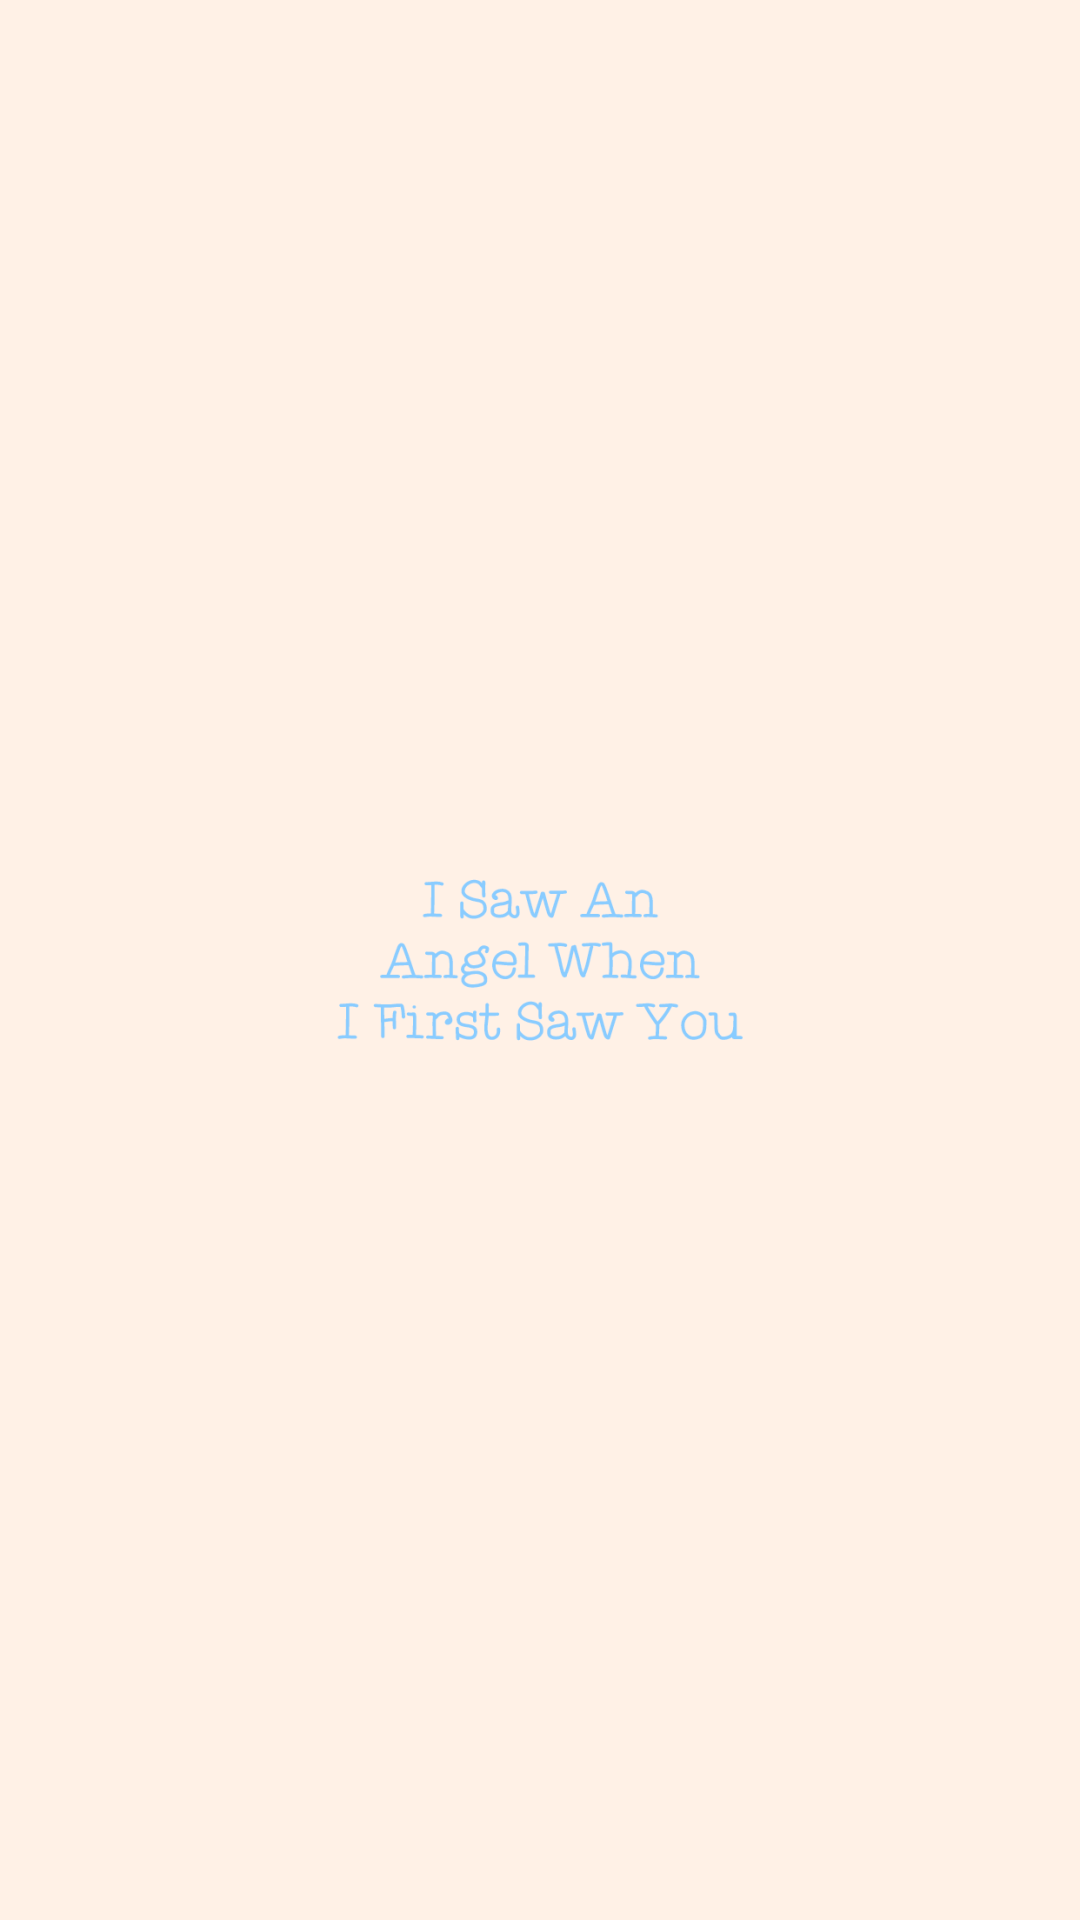 Angel Nct 127 Cute Inspirational Quotes Lyrics Aesthetic Nct